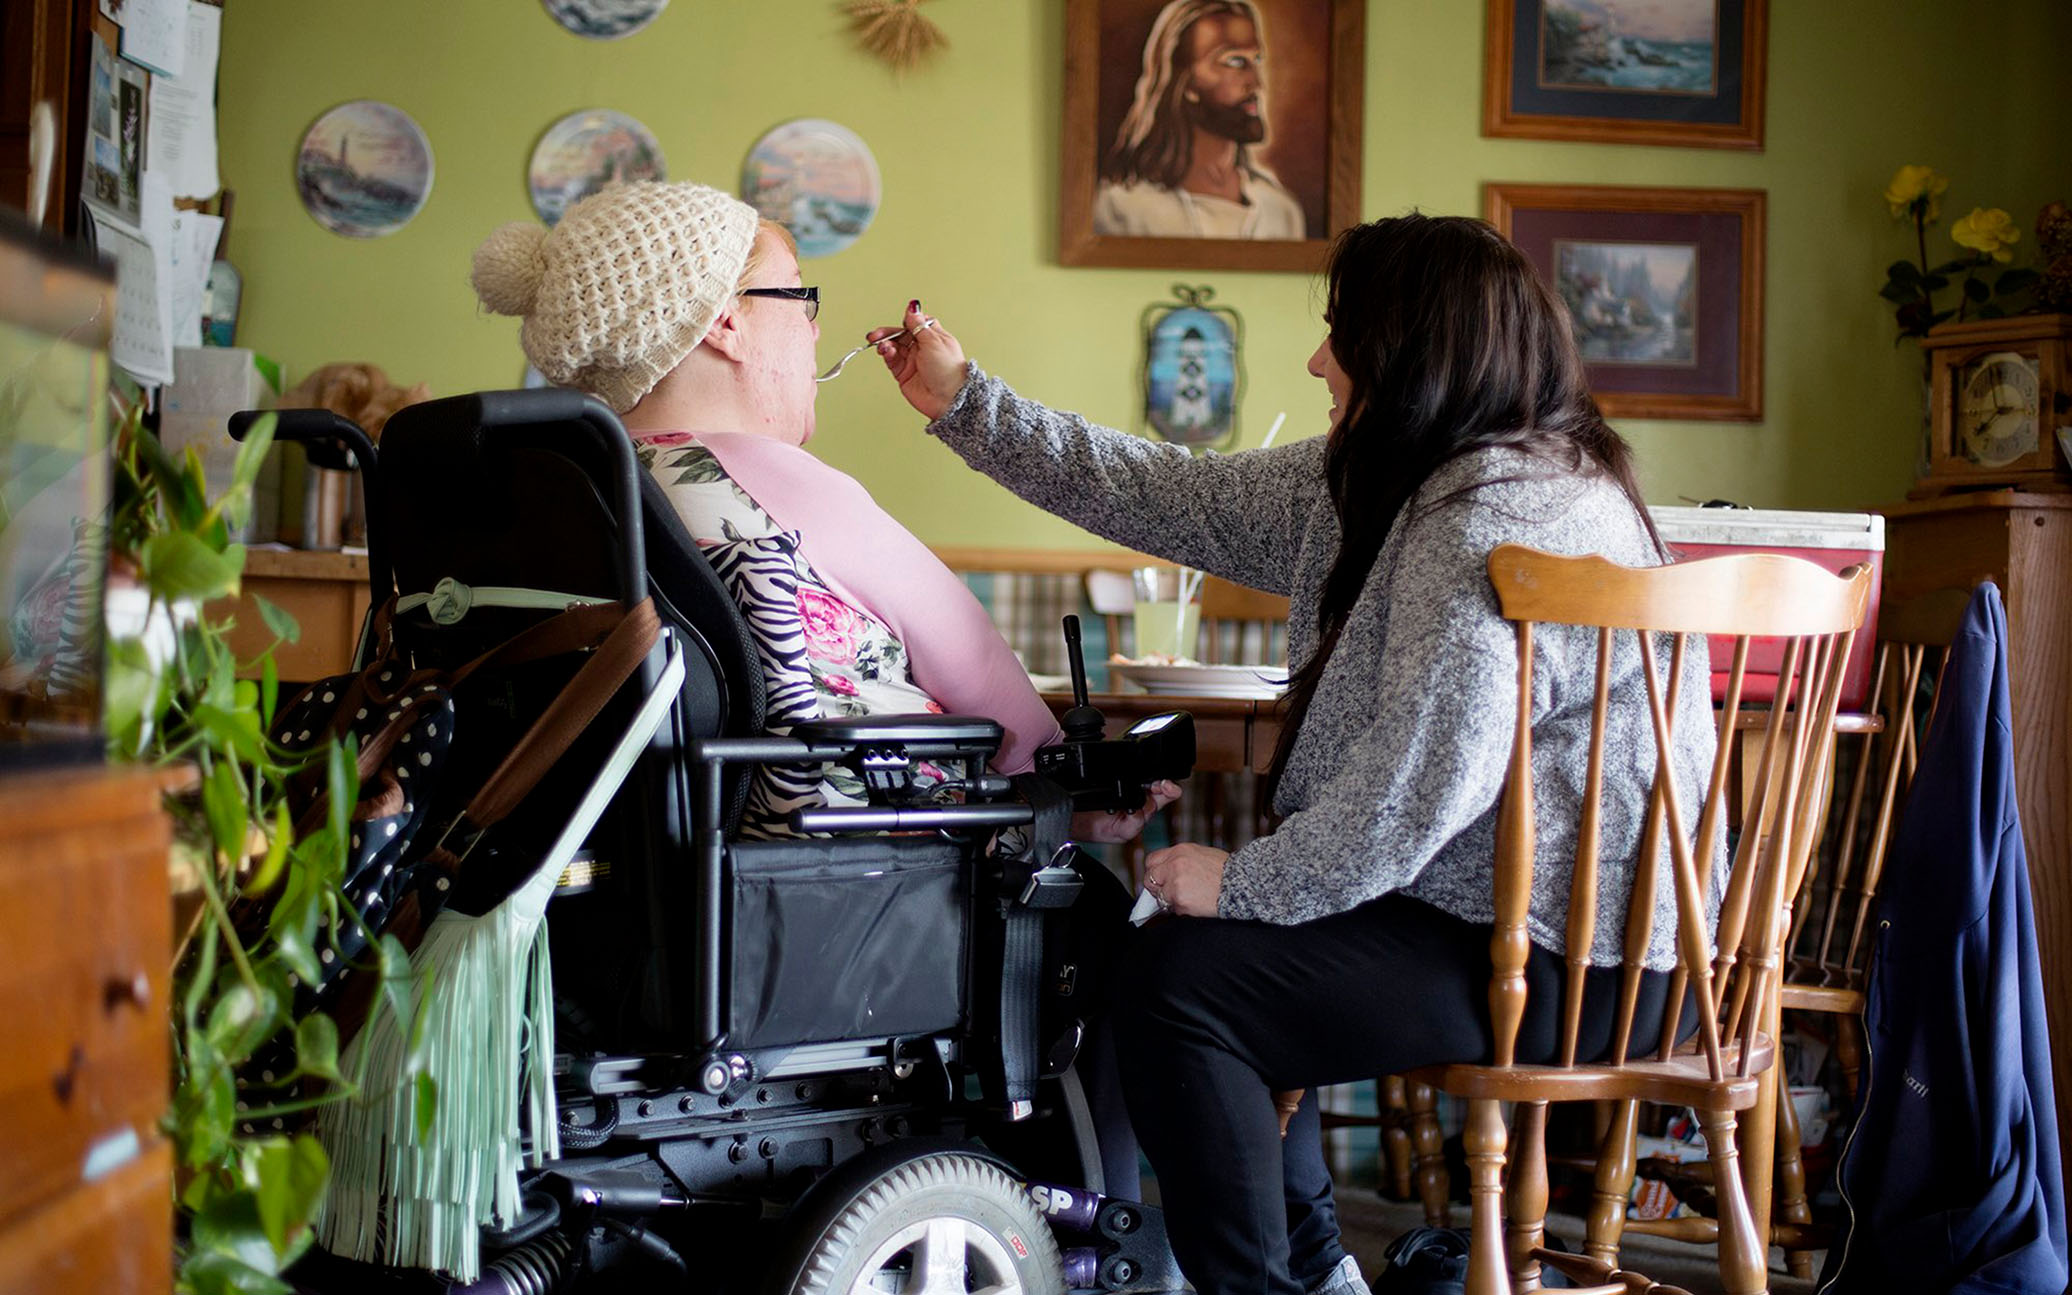 A caregiver assists a woman with a disability. Under a new federal rule, personal care attendants are considered health care workers and have broader rights to refuse to provide services that go against their beliefs. (Courtney Hergesheimer/The Columbus Dispatch/TNS)